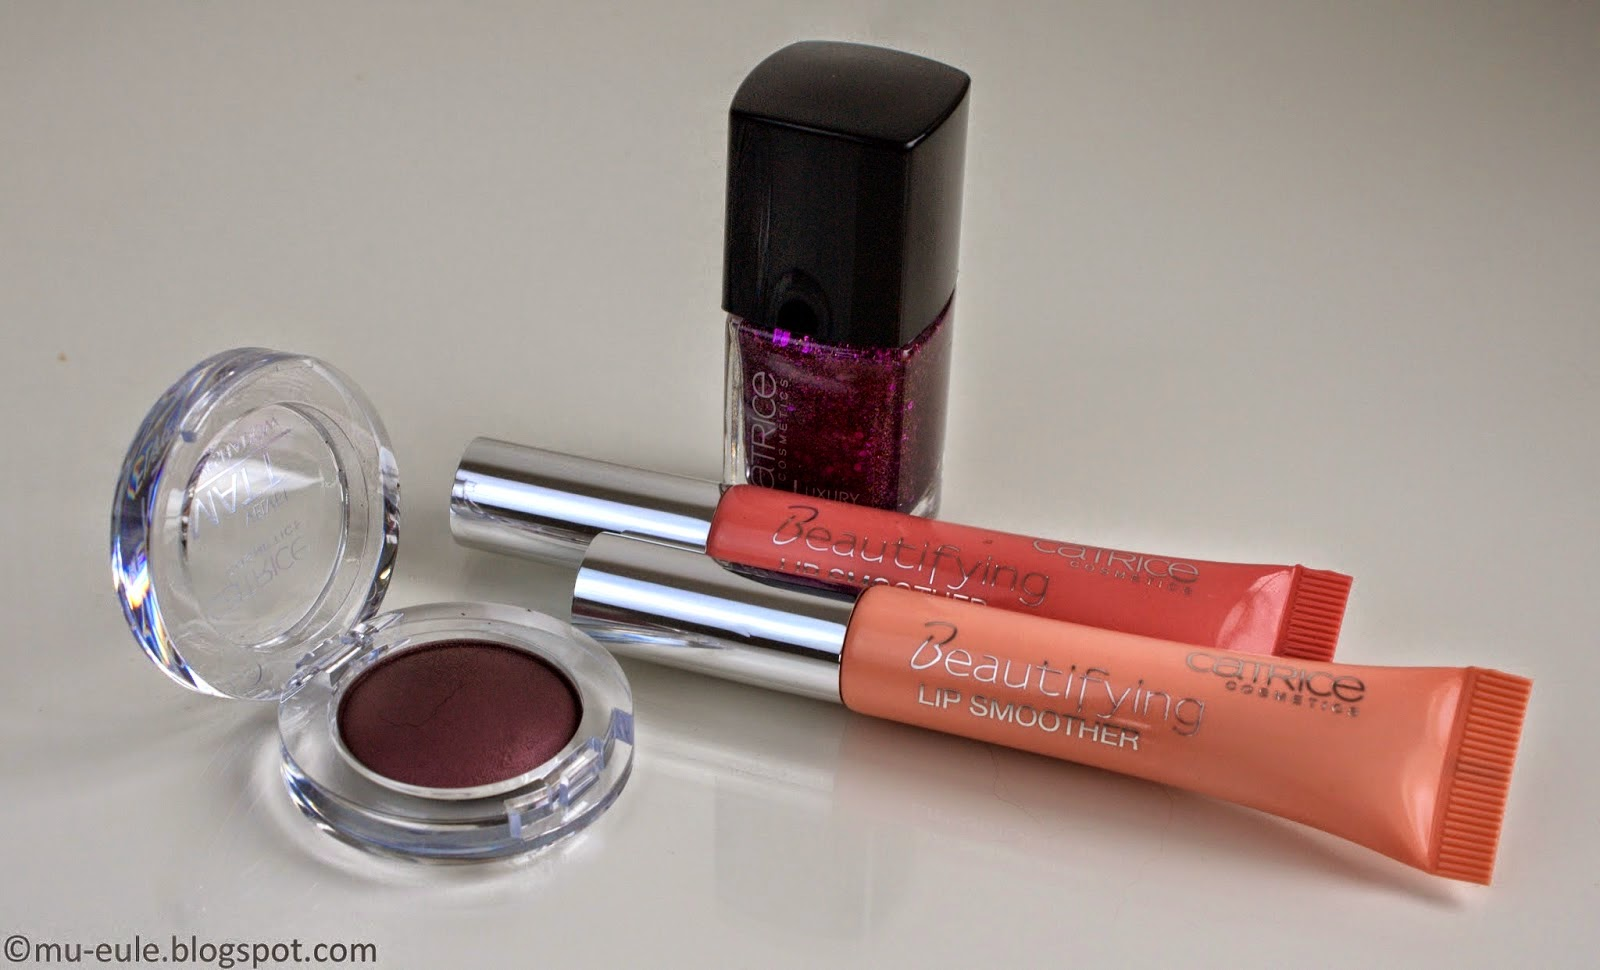 http://mu-eule.blogspot.de/2014/07/catrice-beautifying-lip-smoother.html